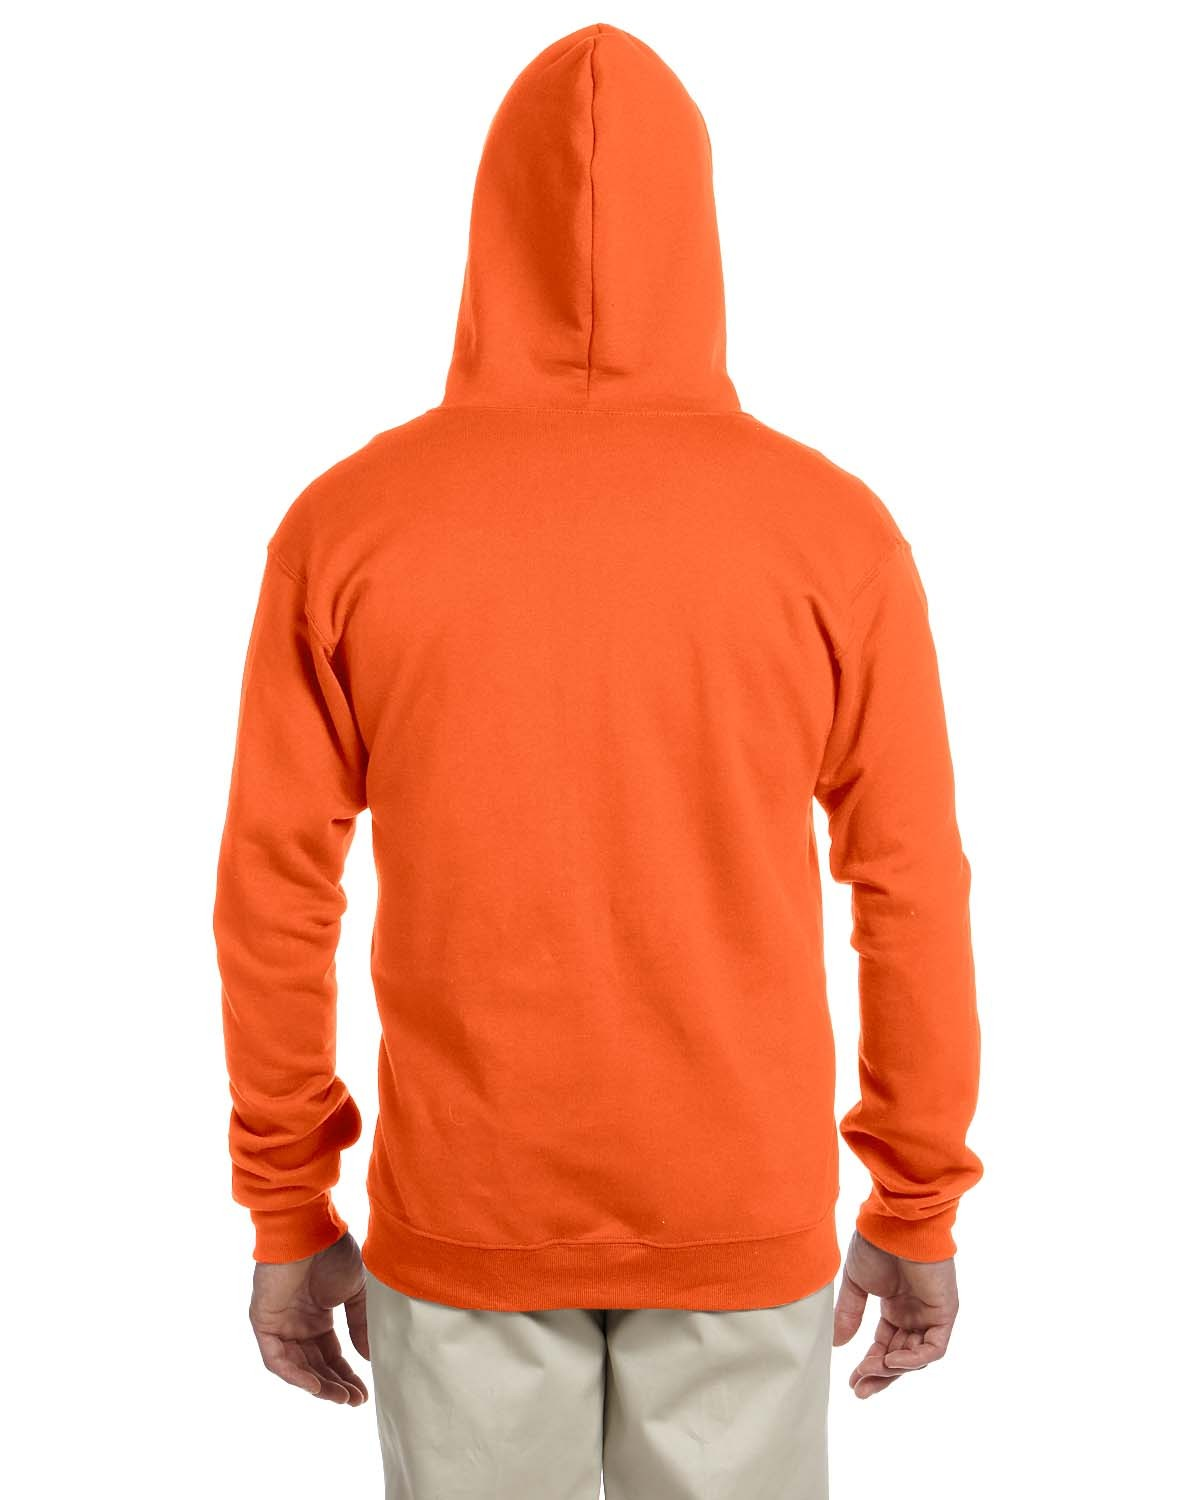 993 Jerzees SAFETY ORANGE